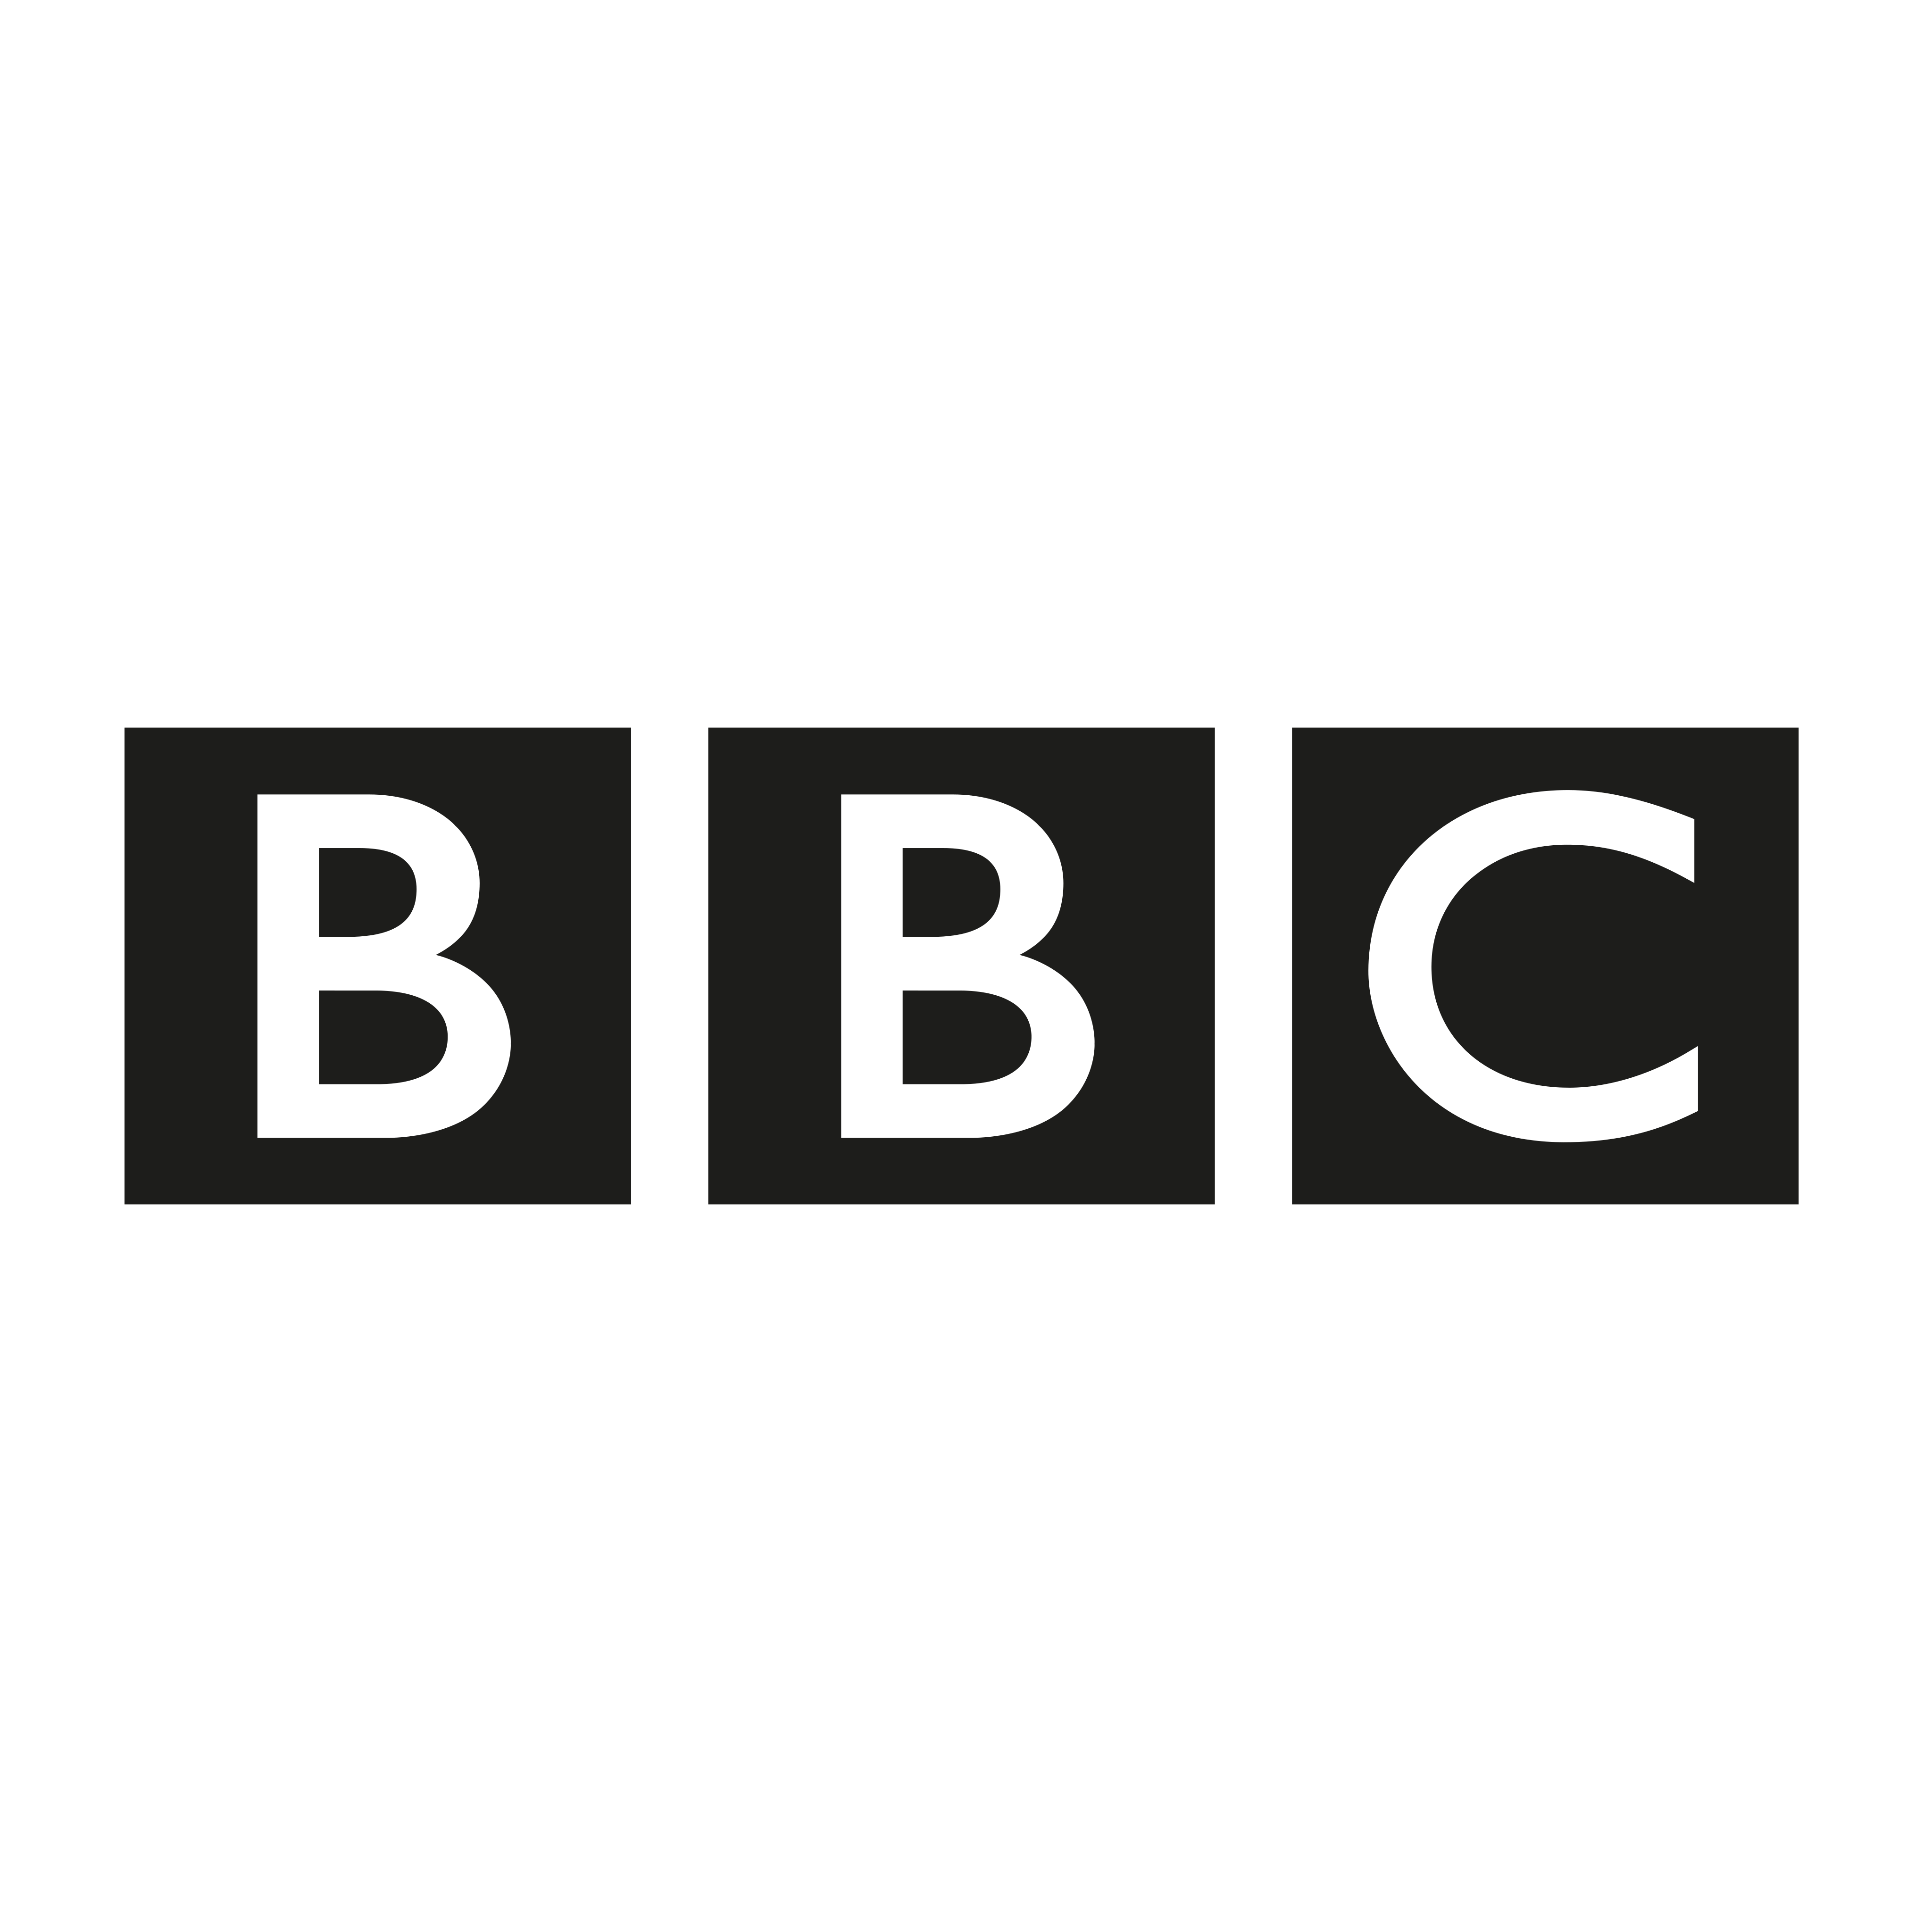 Bbc Logo - Png And Vector - L